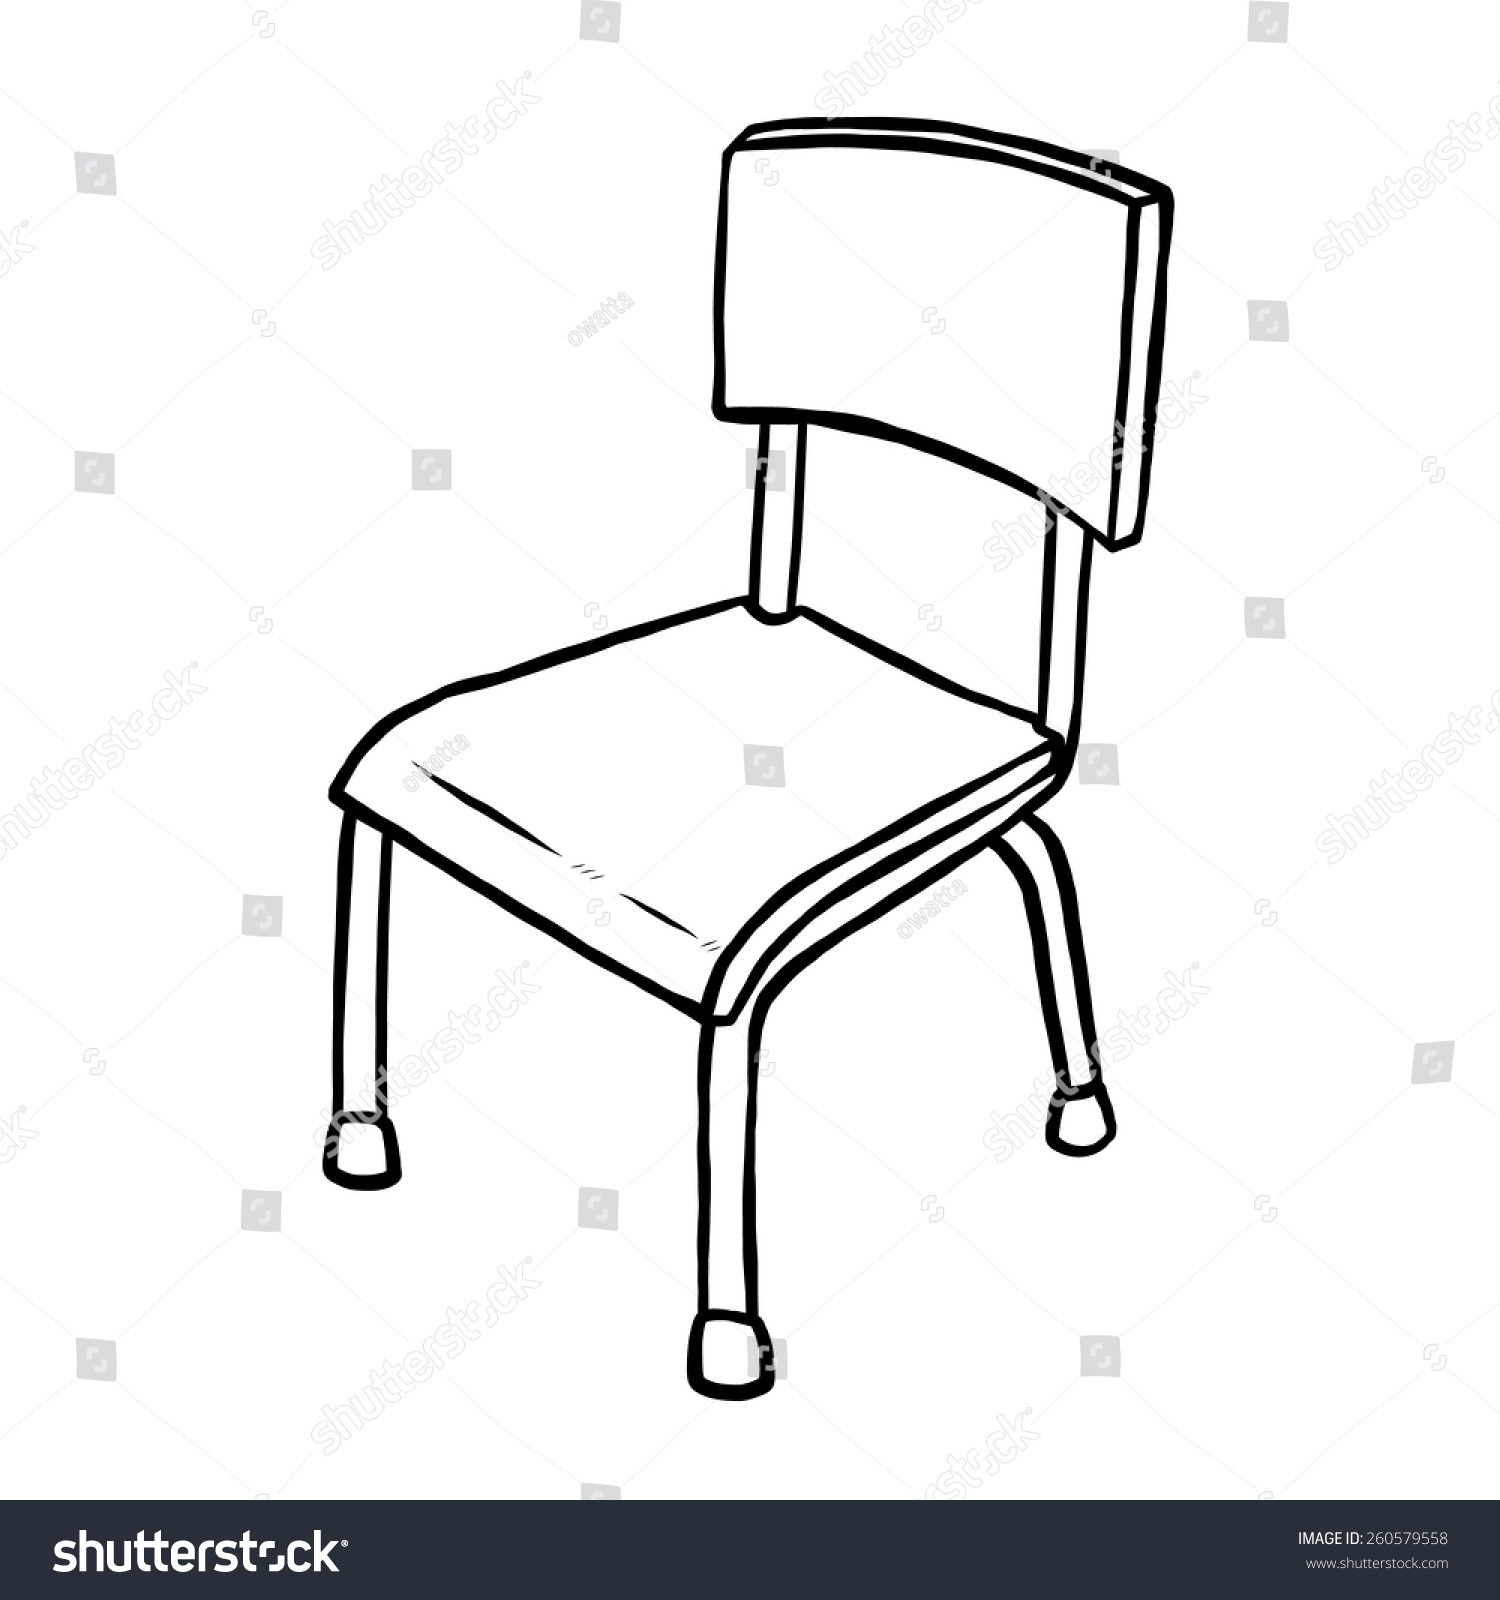 Black and white chair drawing - Stock Vector Classroom Chair Cartoon Vector And Illustration Black And White Hand Drawn Sketch Style Jpg